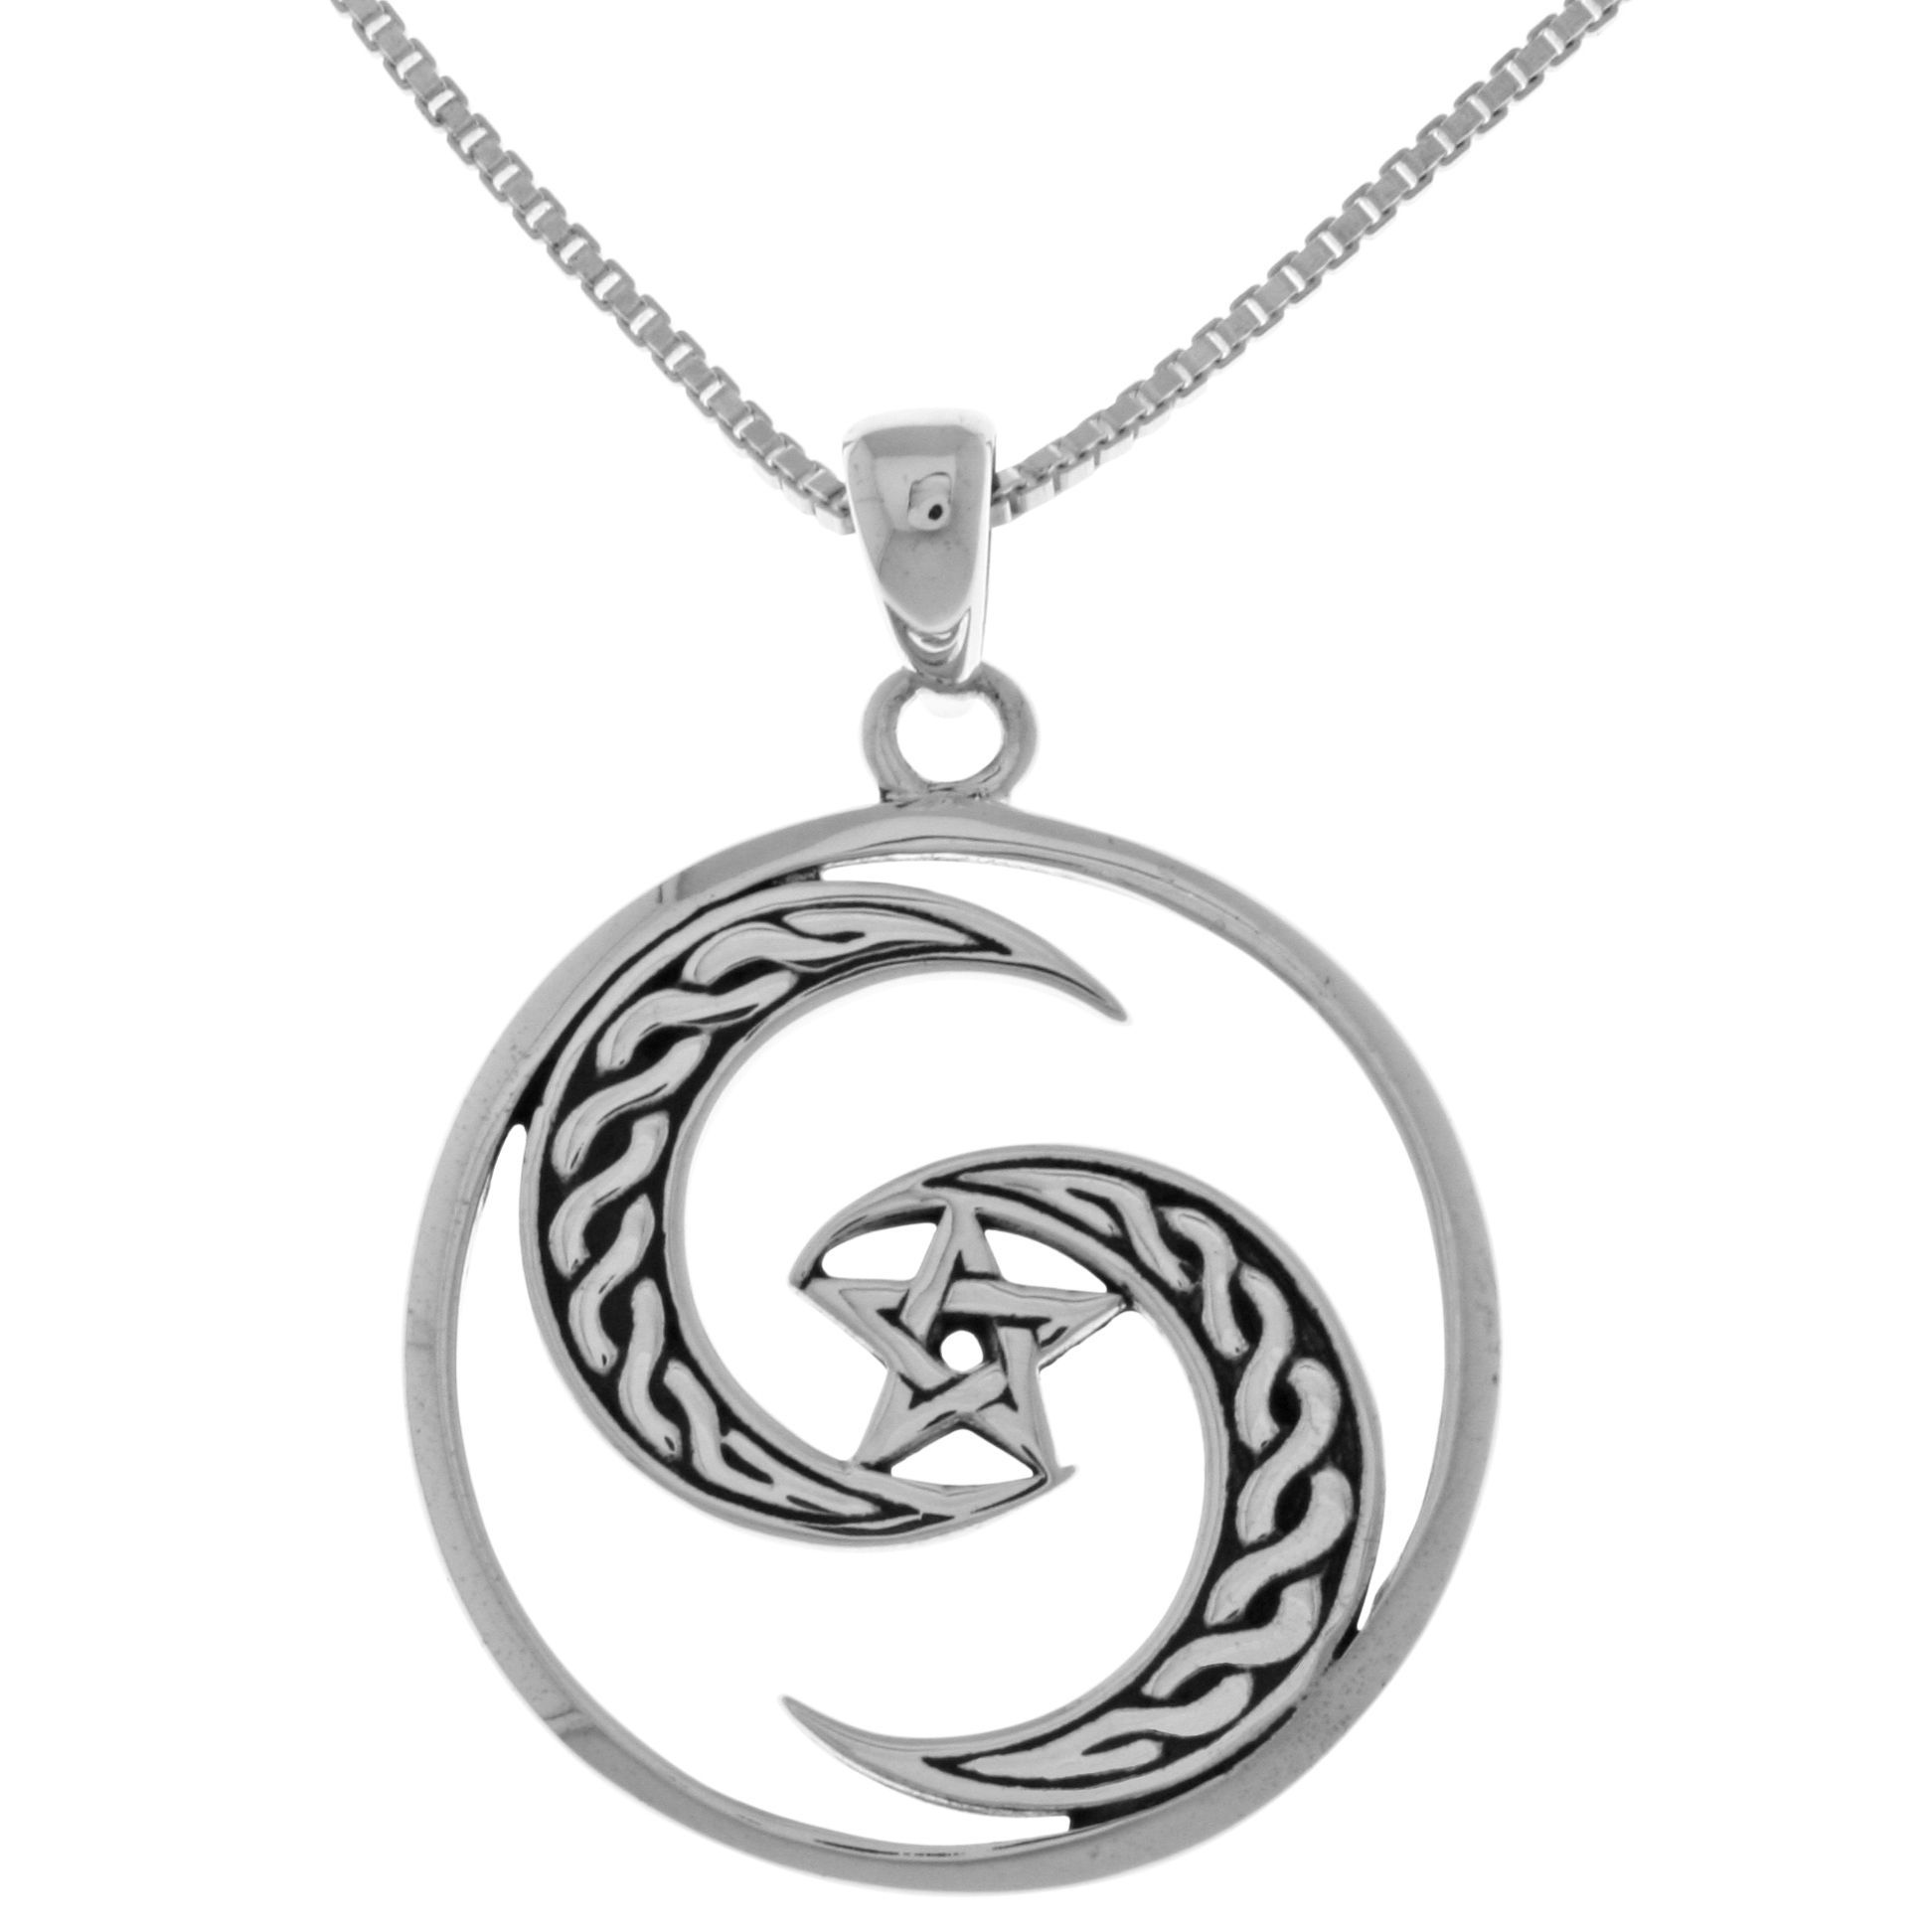 Carolina glamour collection sterling silver goddess celtic moon carolina glamour collection sterling silver goddess celtic moonpentacle pendant on 18 inch mozeypictures Choice Image